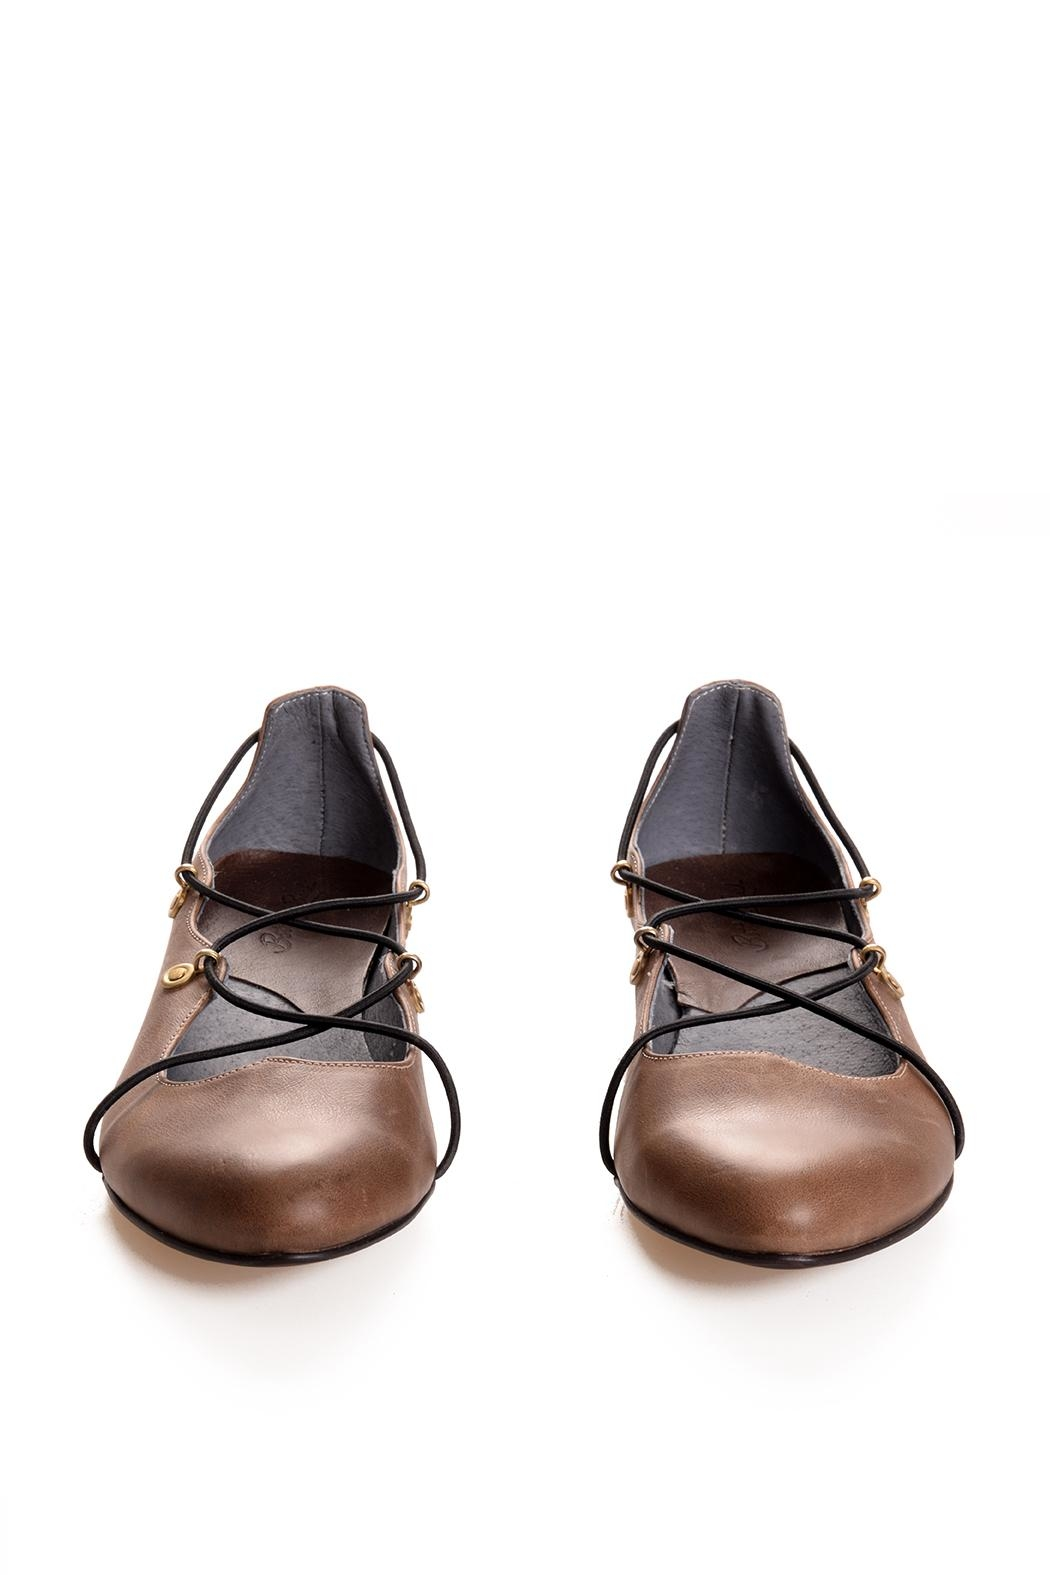 Bottega Bash Brown Leather Loafers - Front Full Image